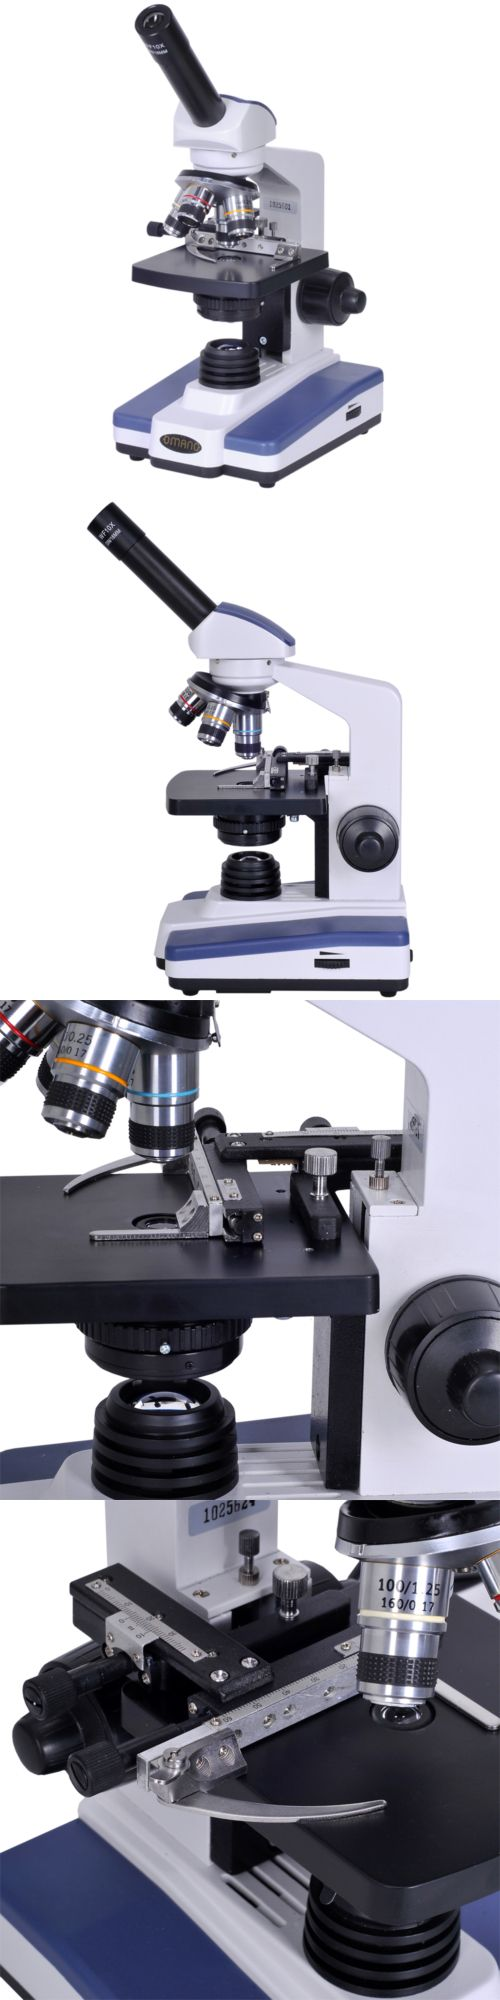 Microscopes and Chemistry 2568: Om118-M4 Monocular Compound Microscope -> BUY IT NOW ONLY: $179 on eBay!